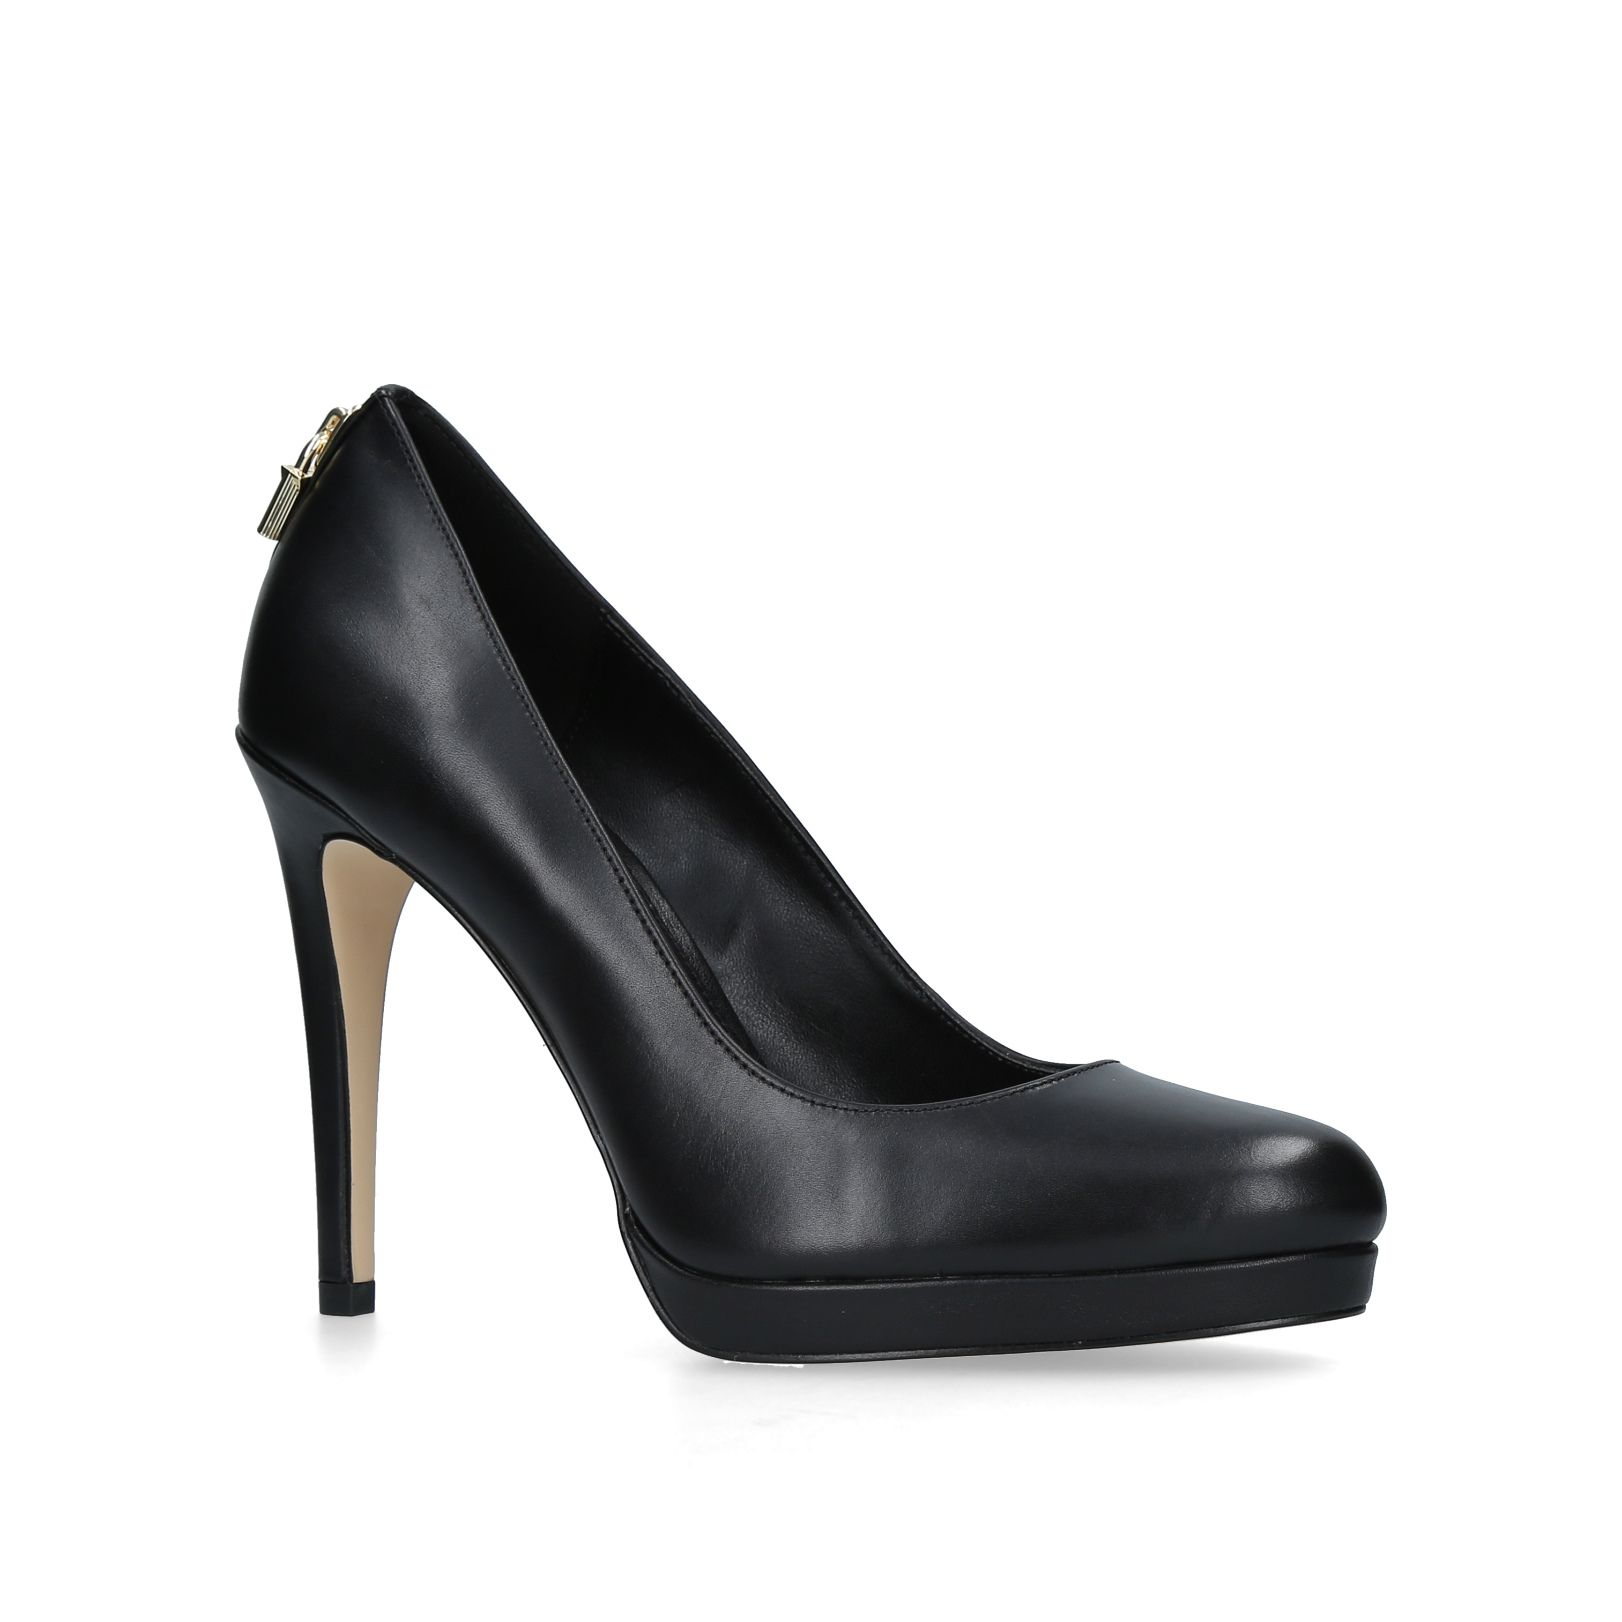 Michael Kors Antionette pump court shoes, Black